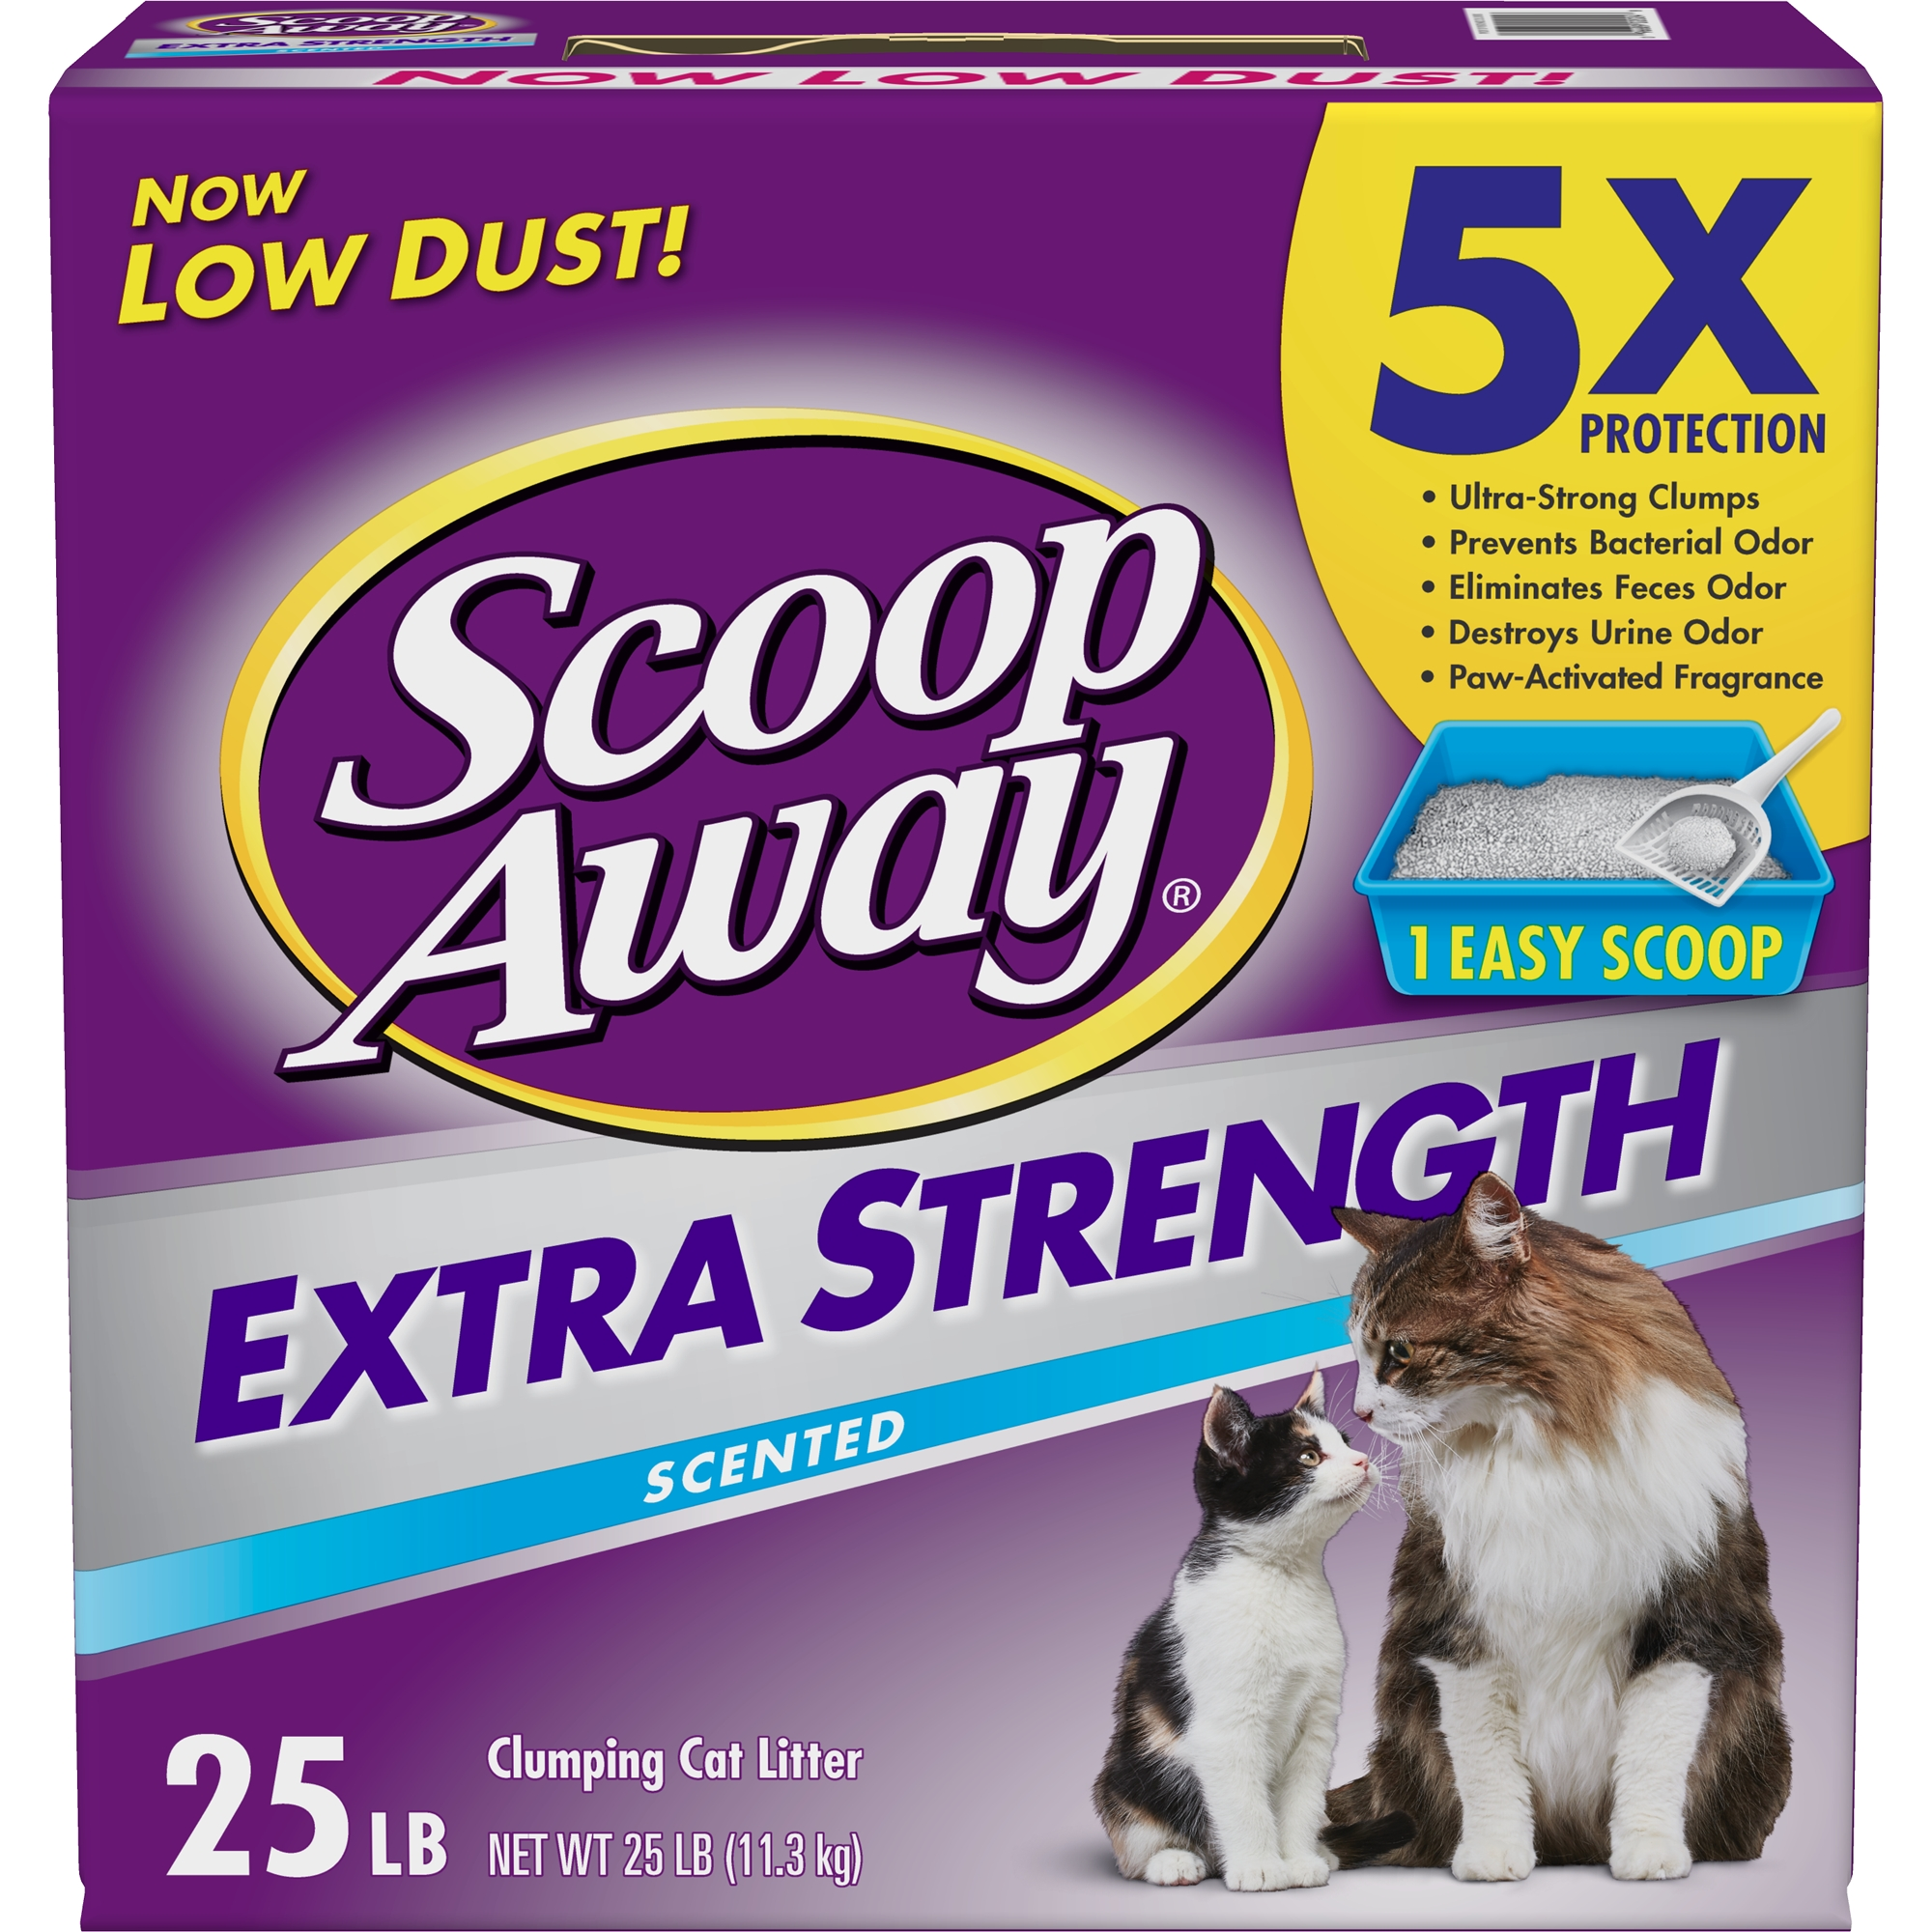 Scoop Away Extra Strength, Scented Cat Litter, 25 lbs